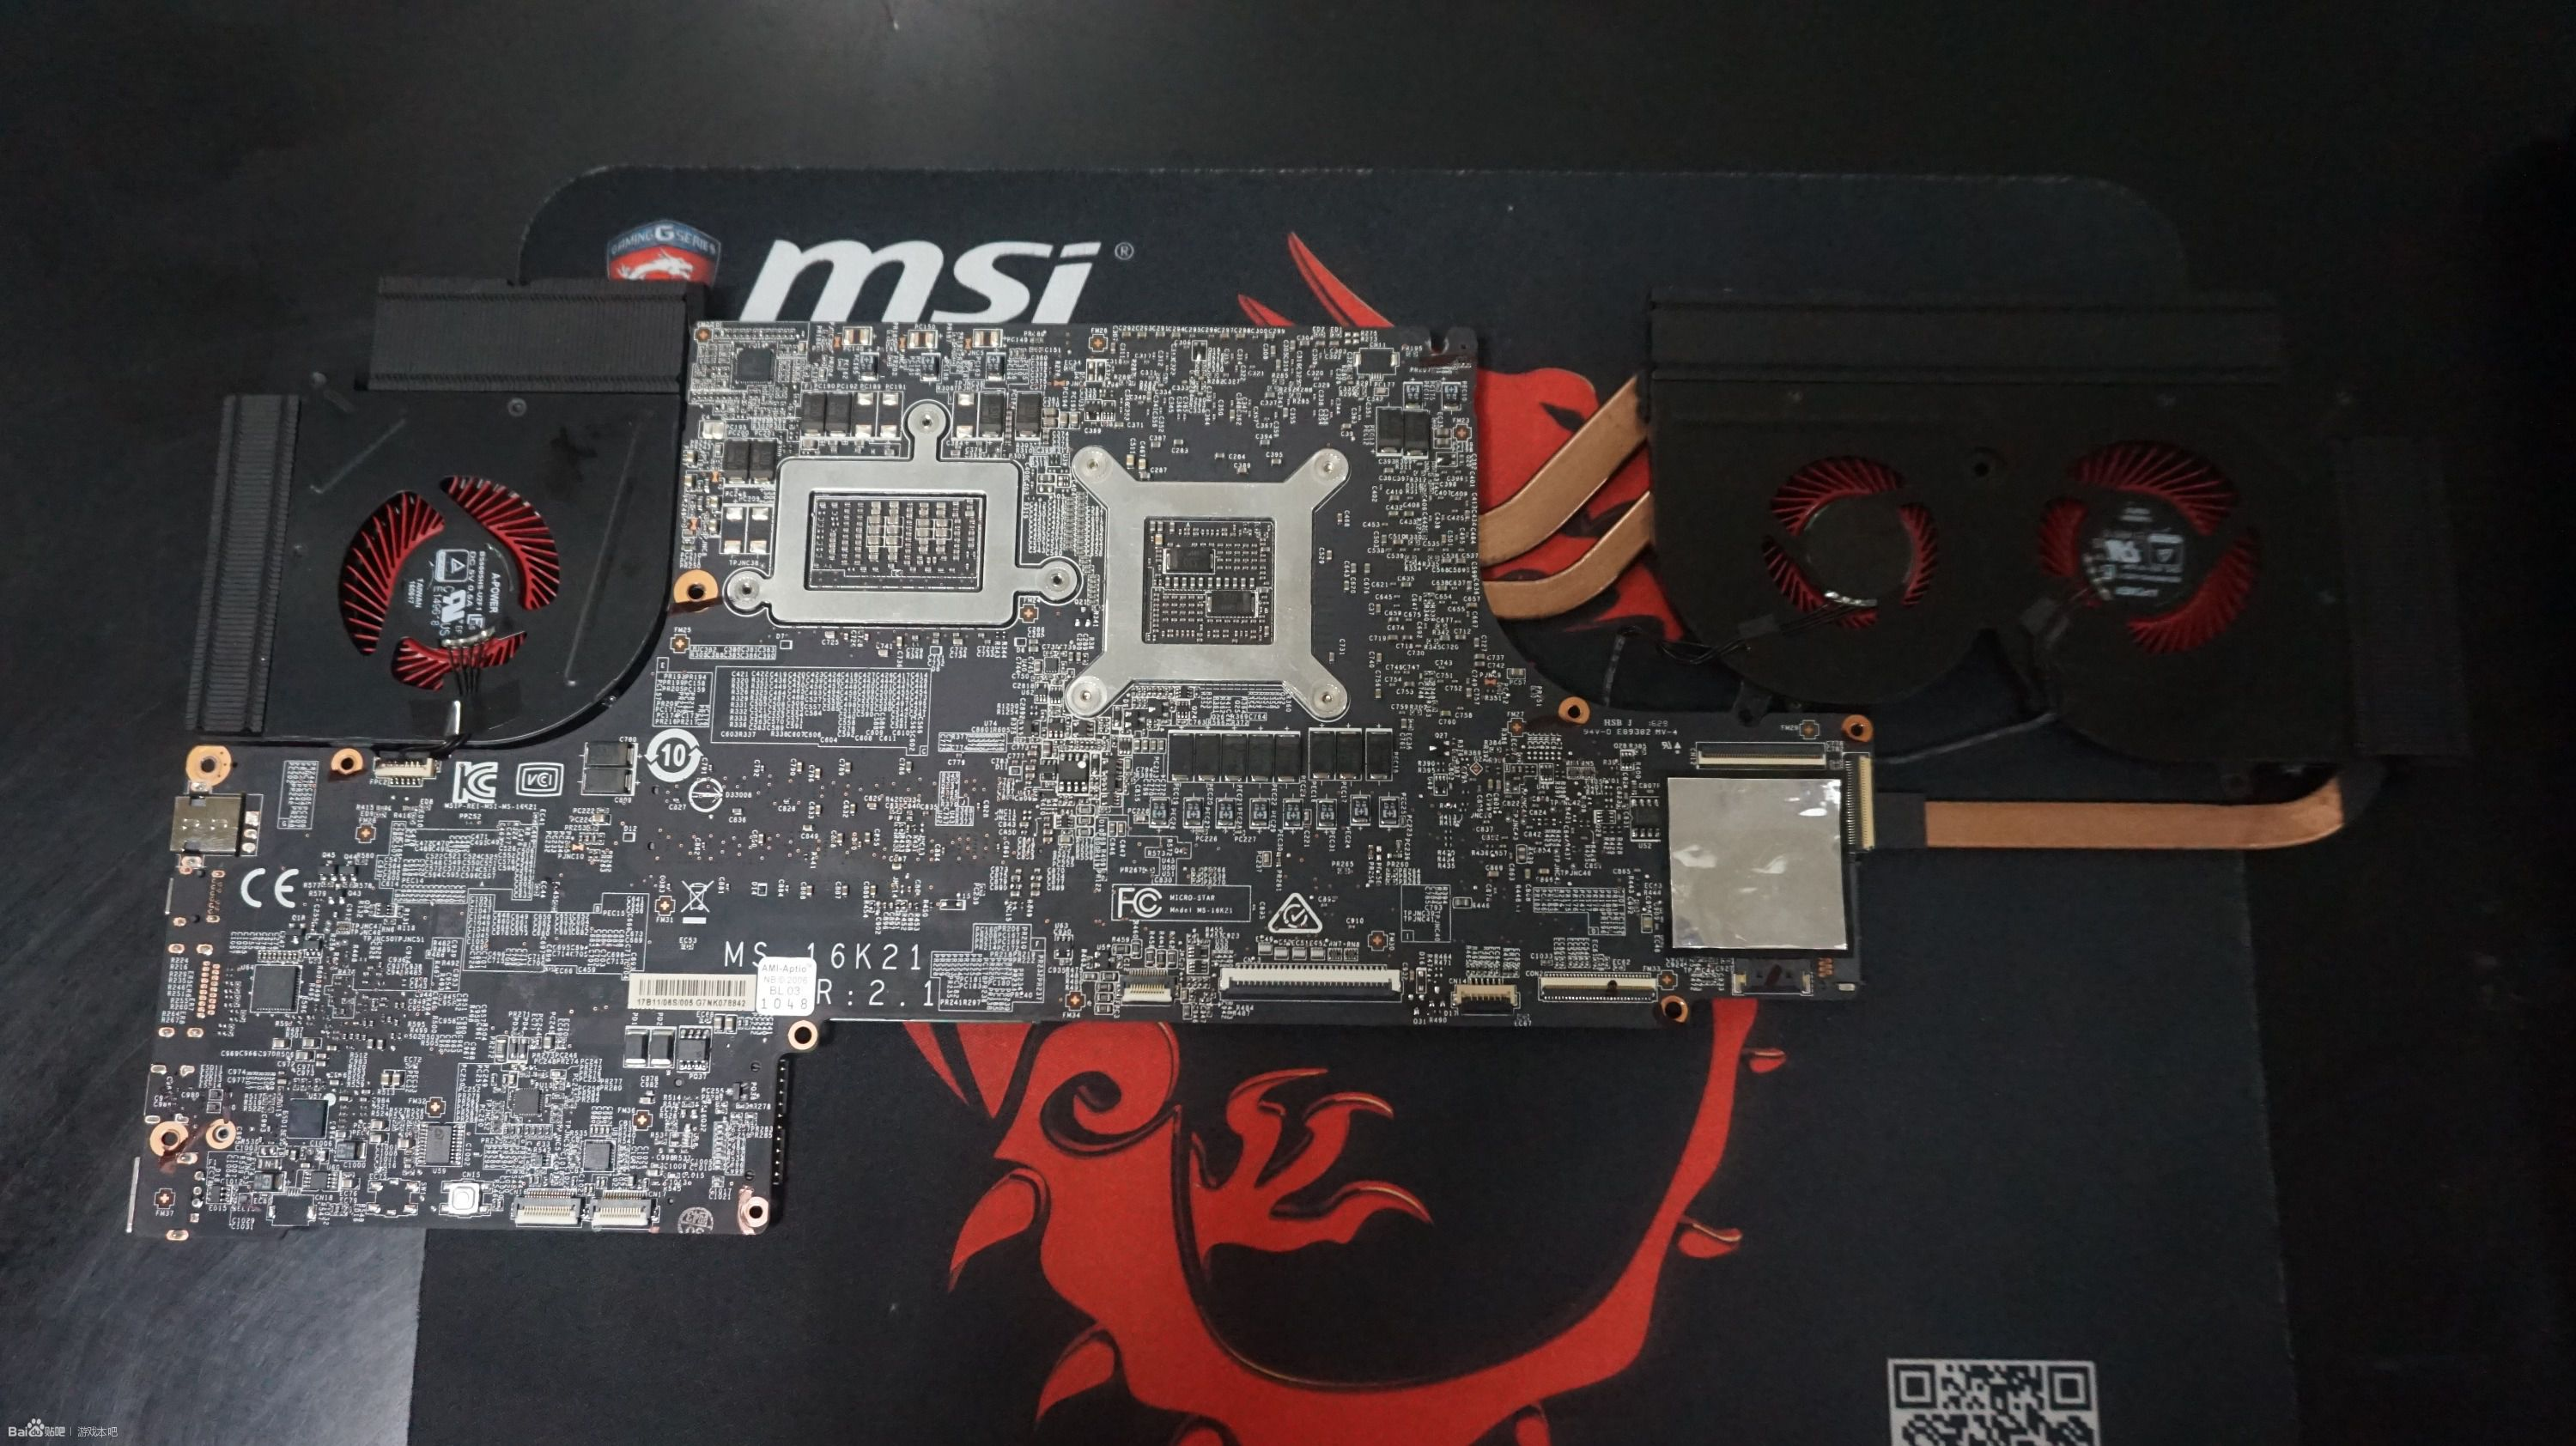 Msi Gs73vr Disassembly And Ram Hdd Ssd Upgrade Guide